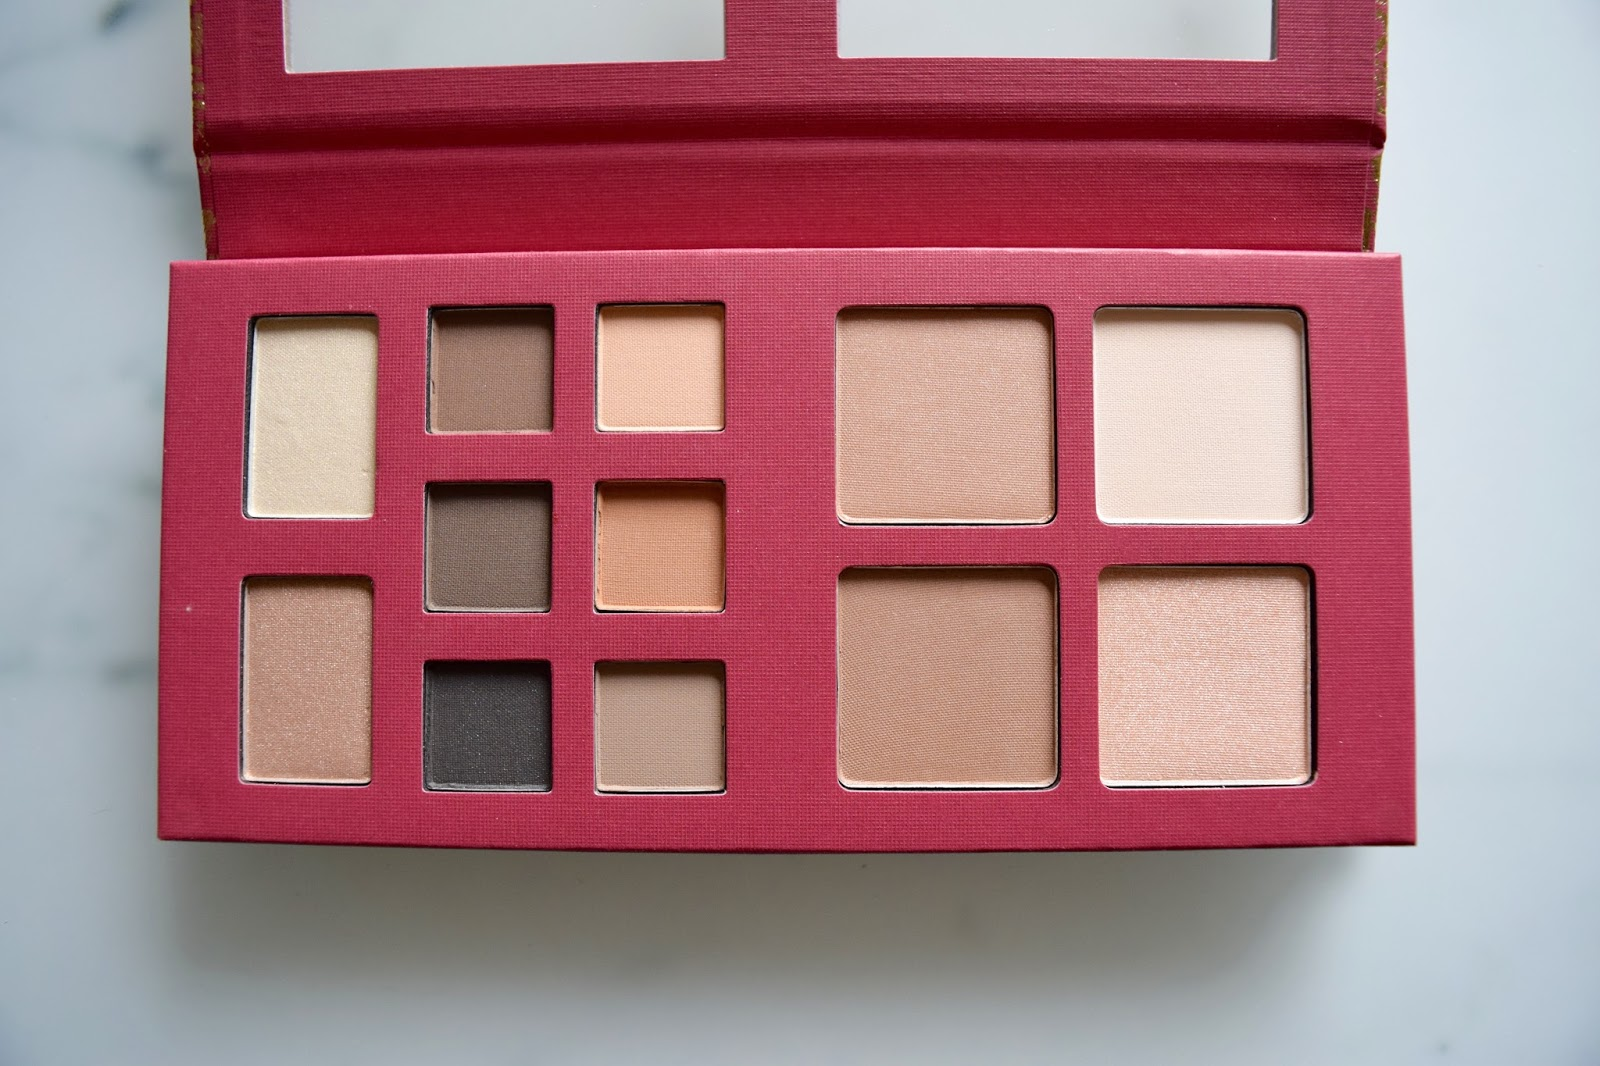 Pixi Beauty Holiday Gift Sets